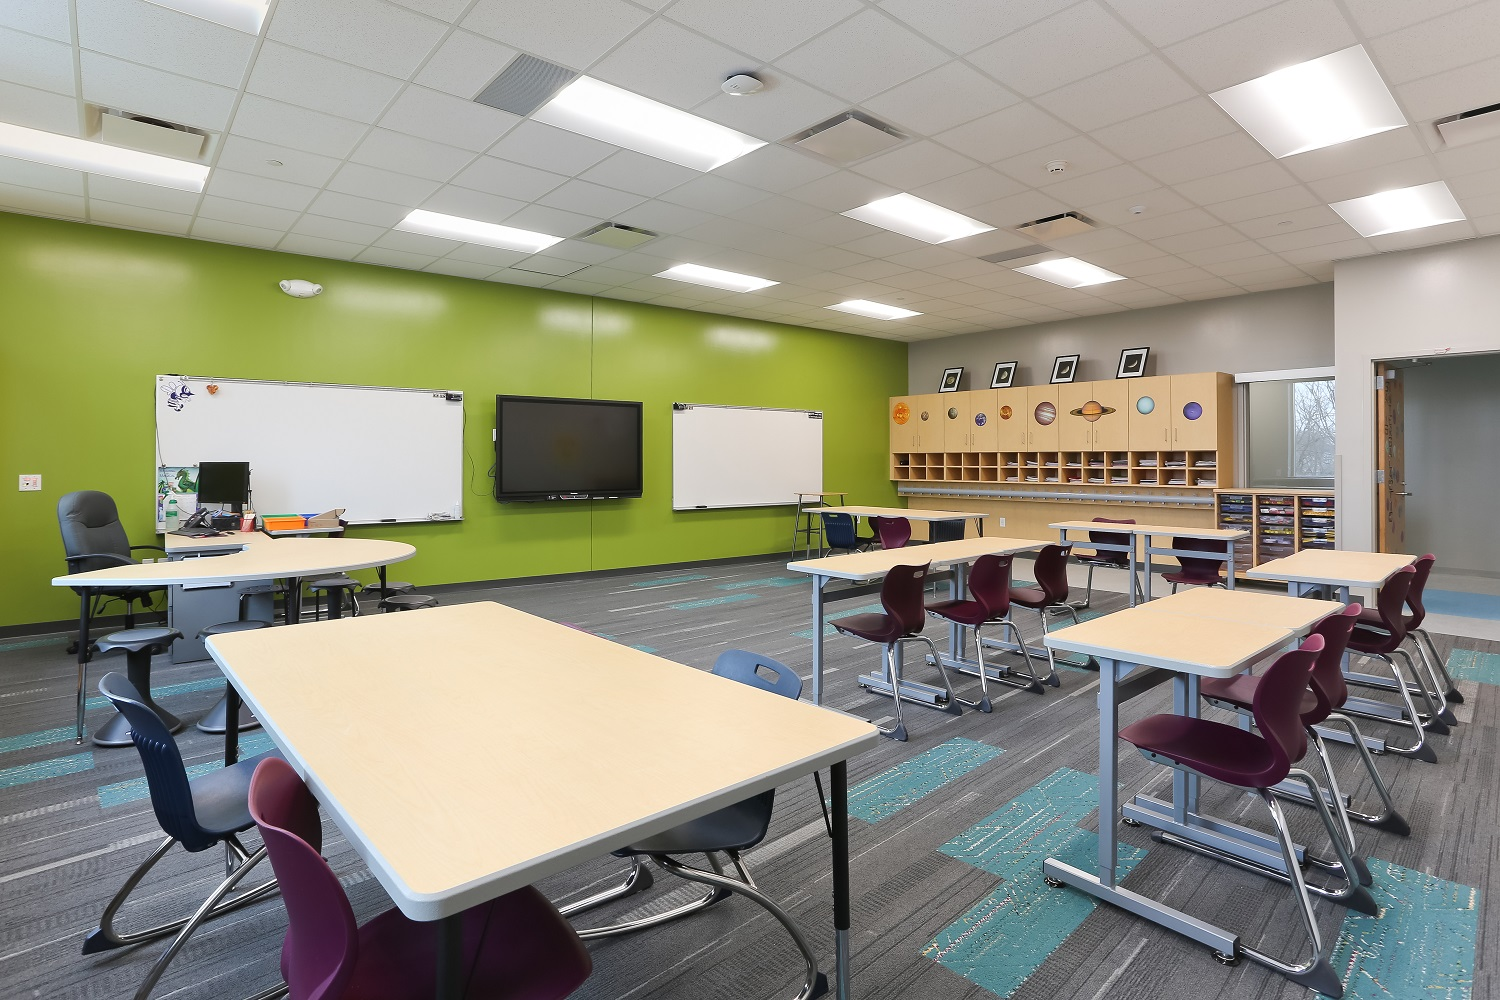 Mark Twain Elementary School students's new learning environment is open and bright